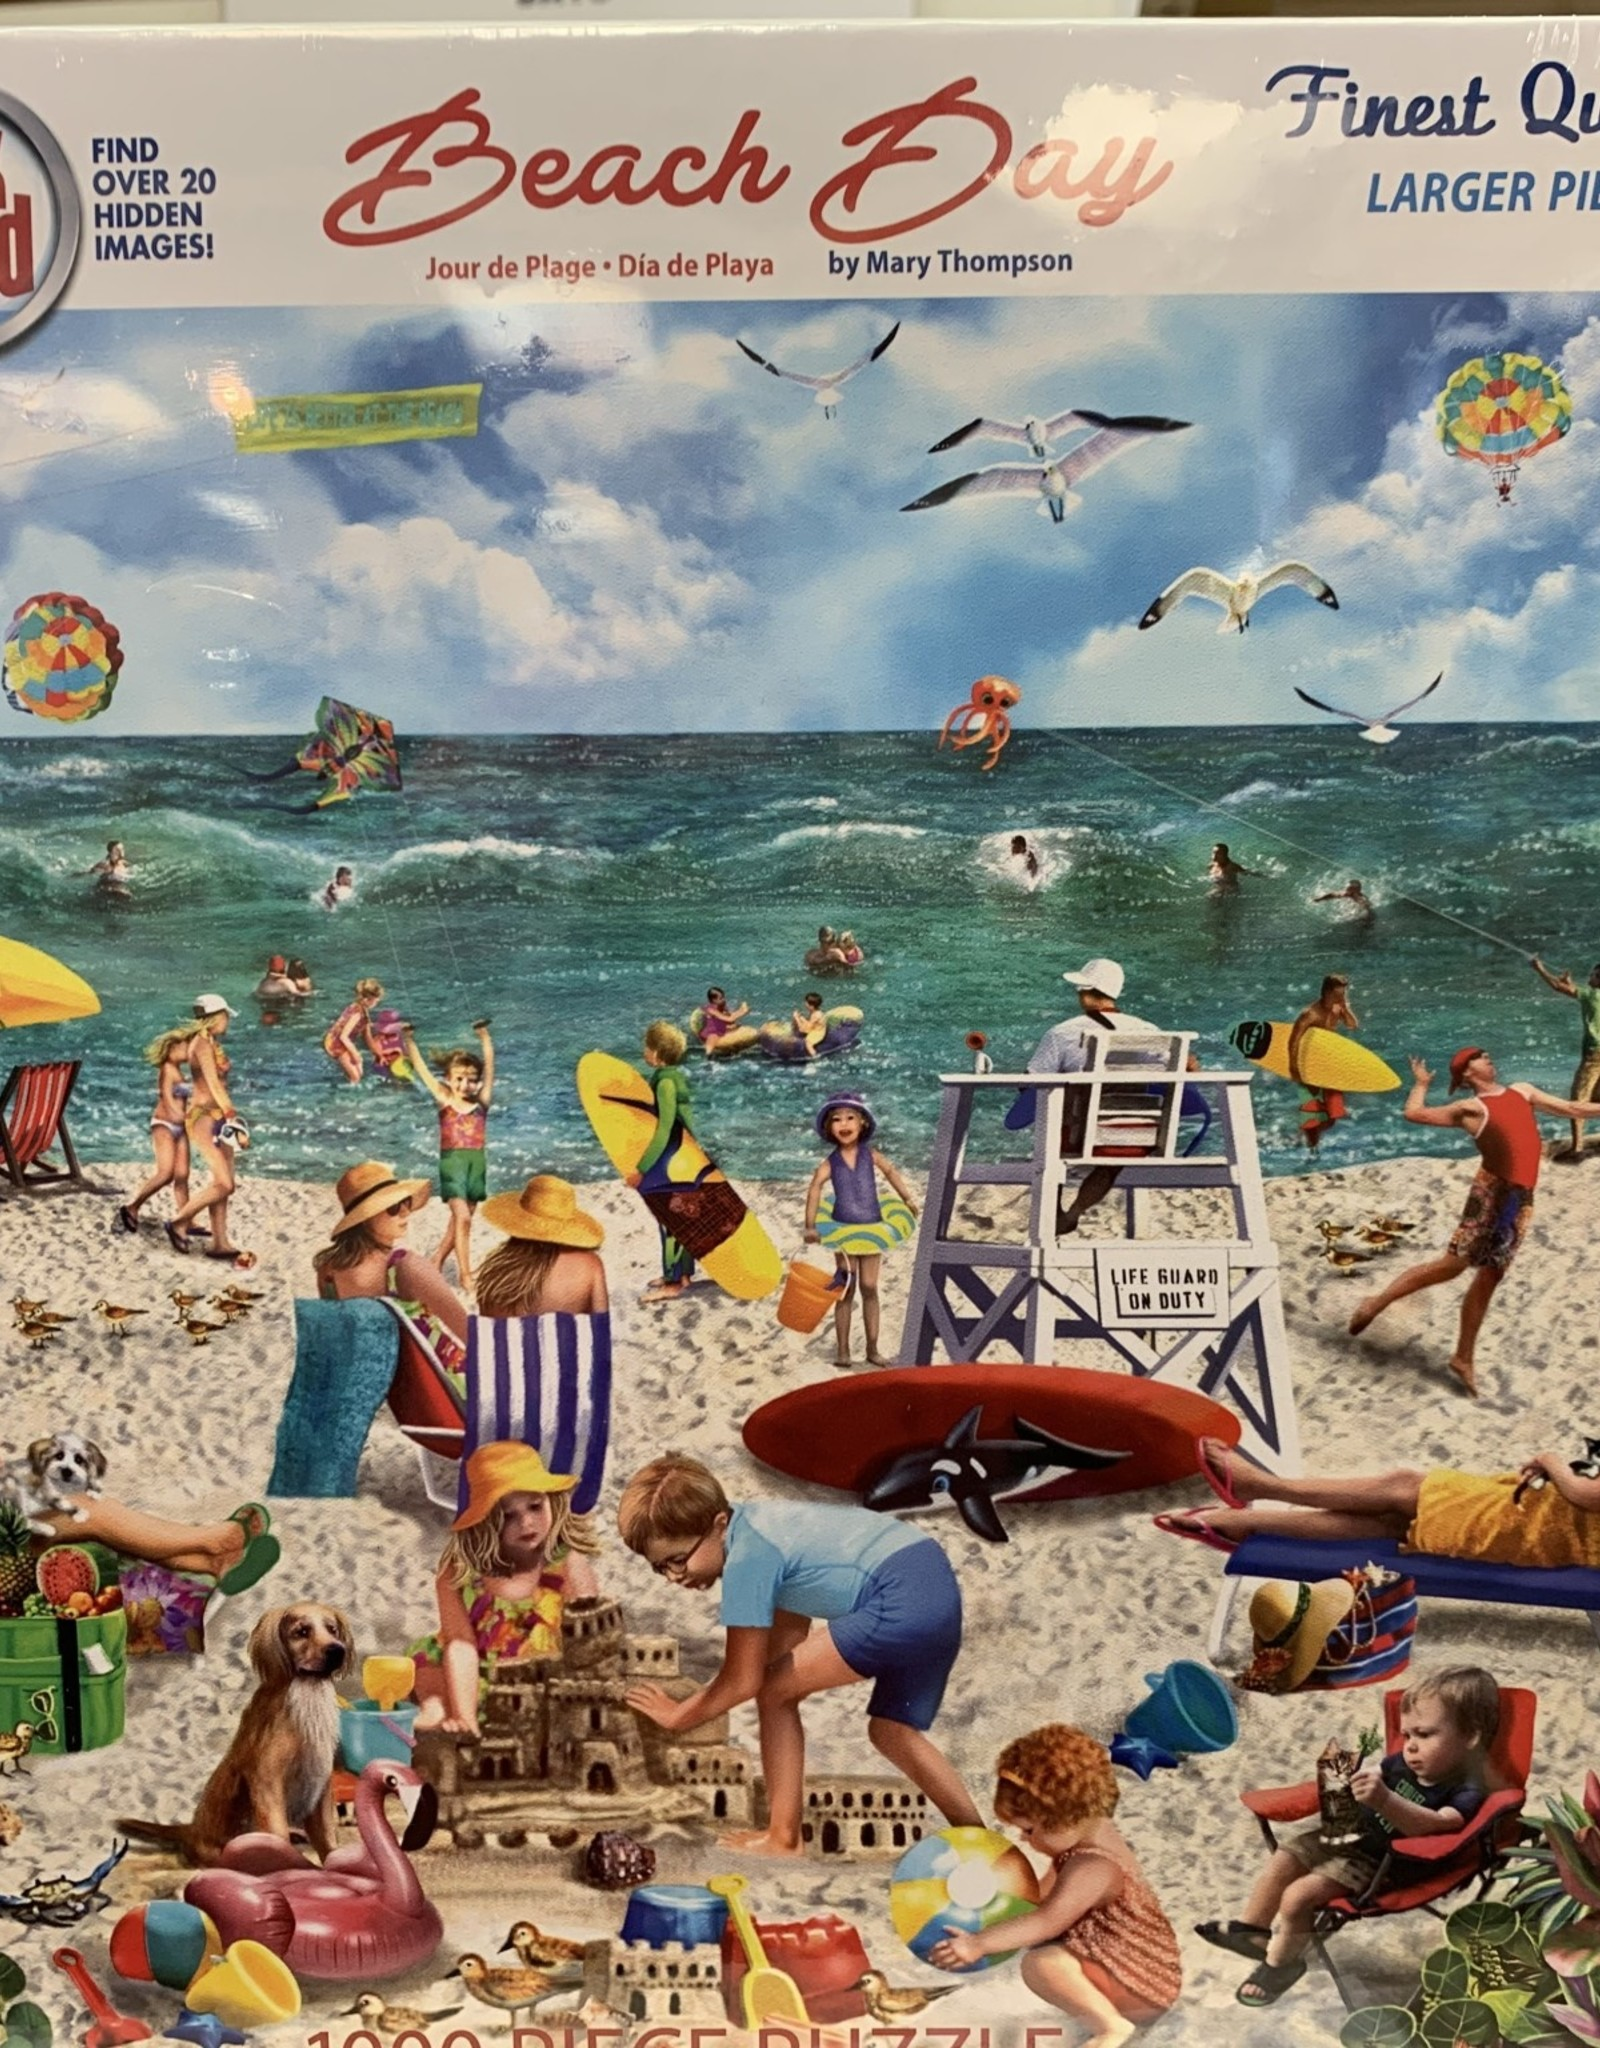 WHITE MOUNTAIN PUZZLES, INC. 1000 pc Beach Day-Seek & Find Puzzle